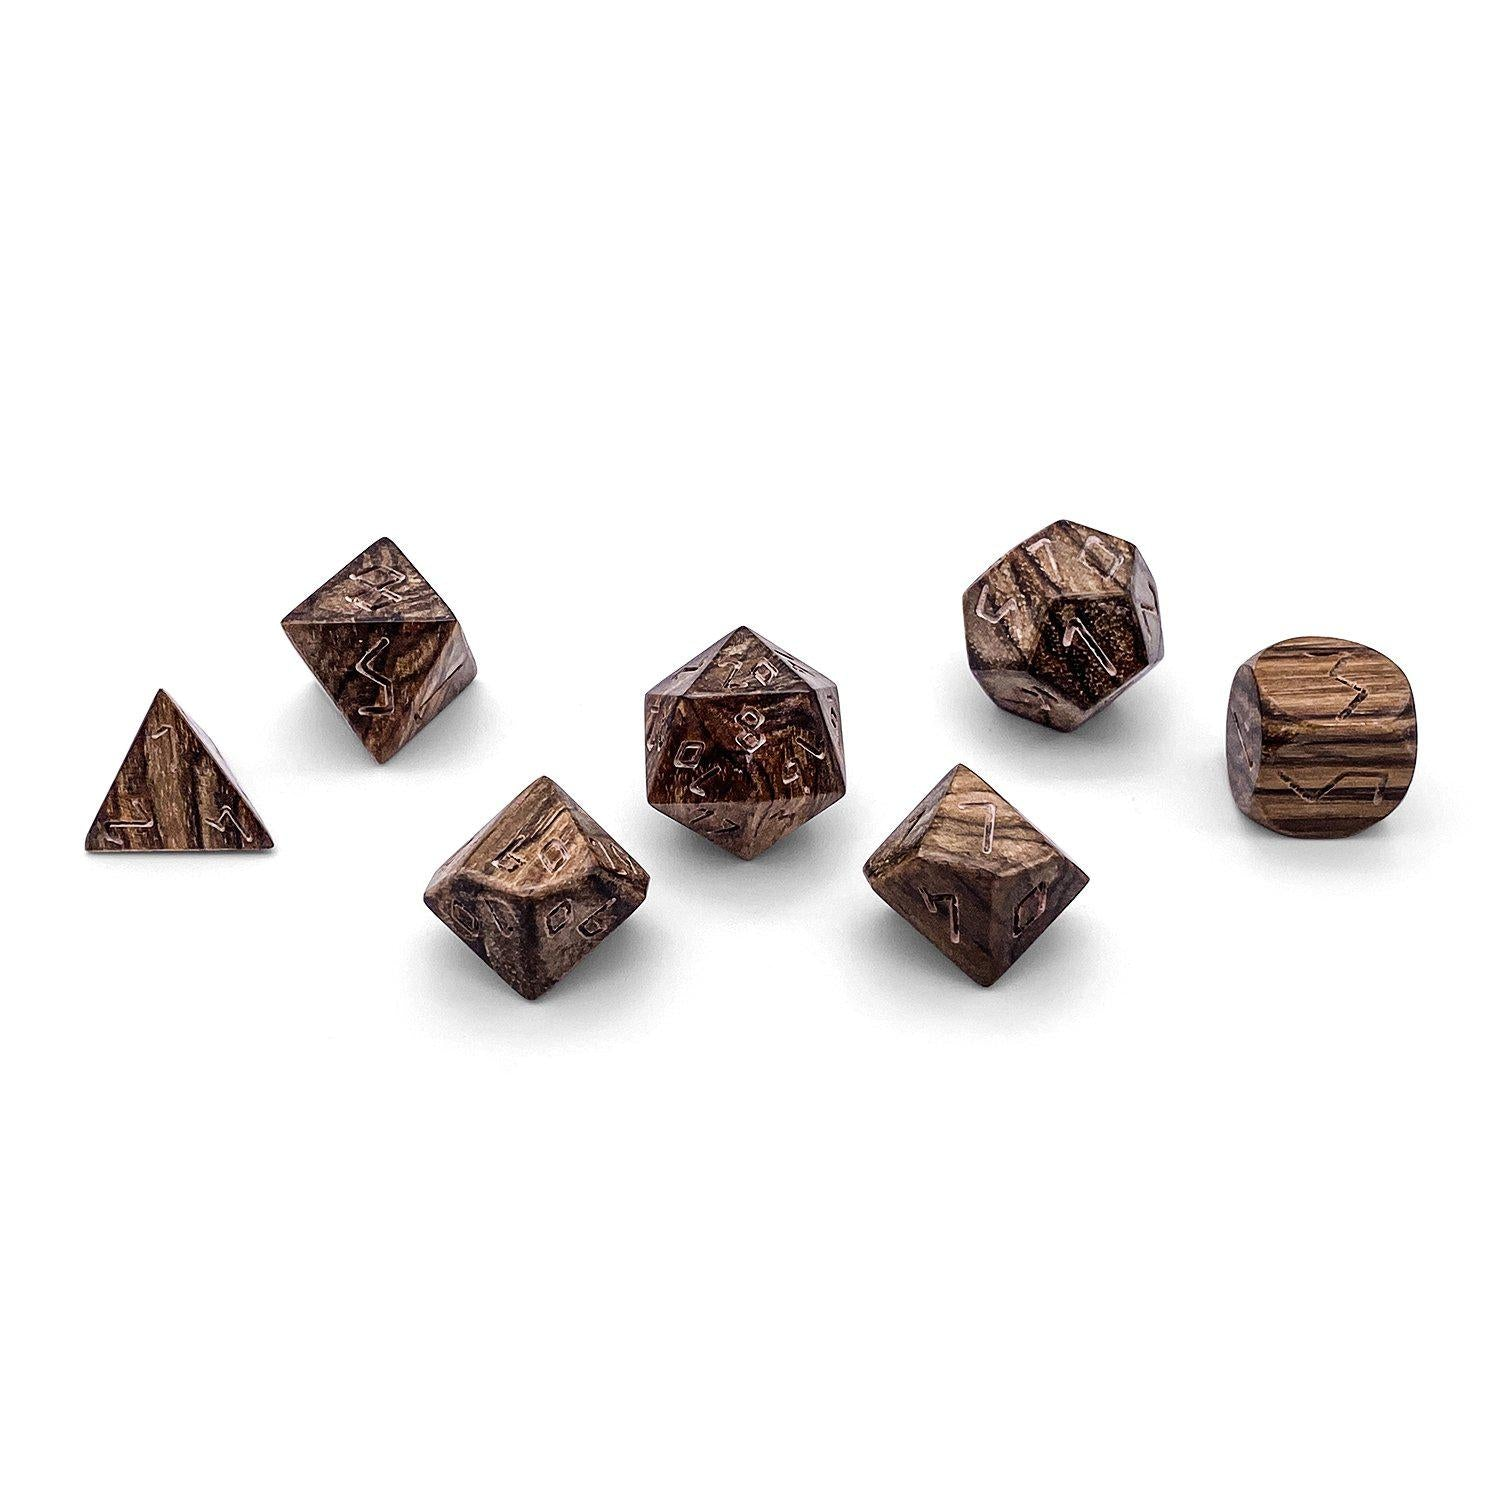 7 piece Wooden Dice Set - Alligator Wood